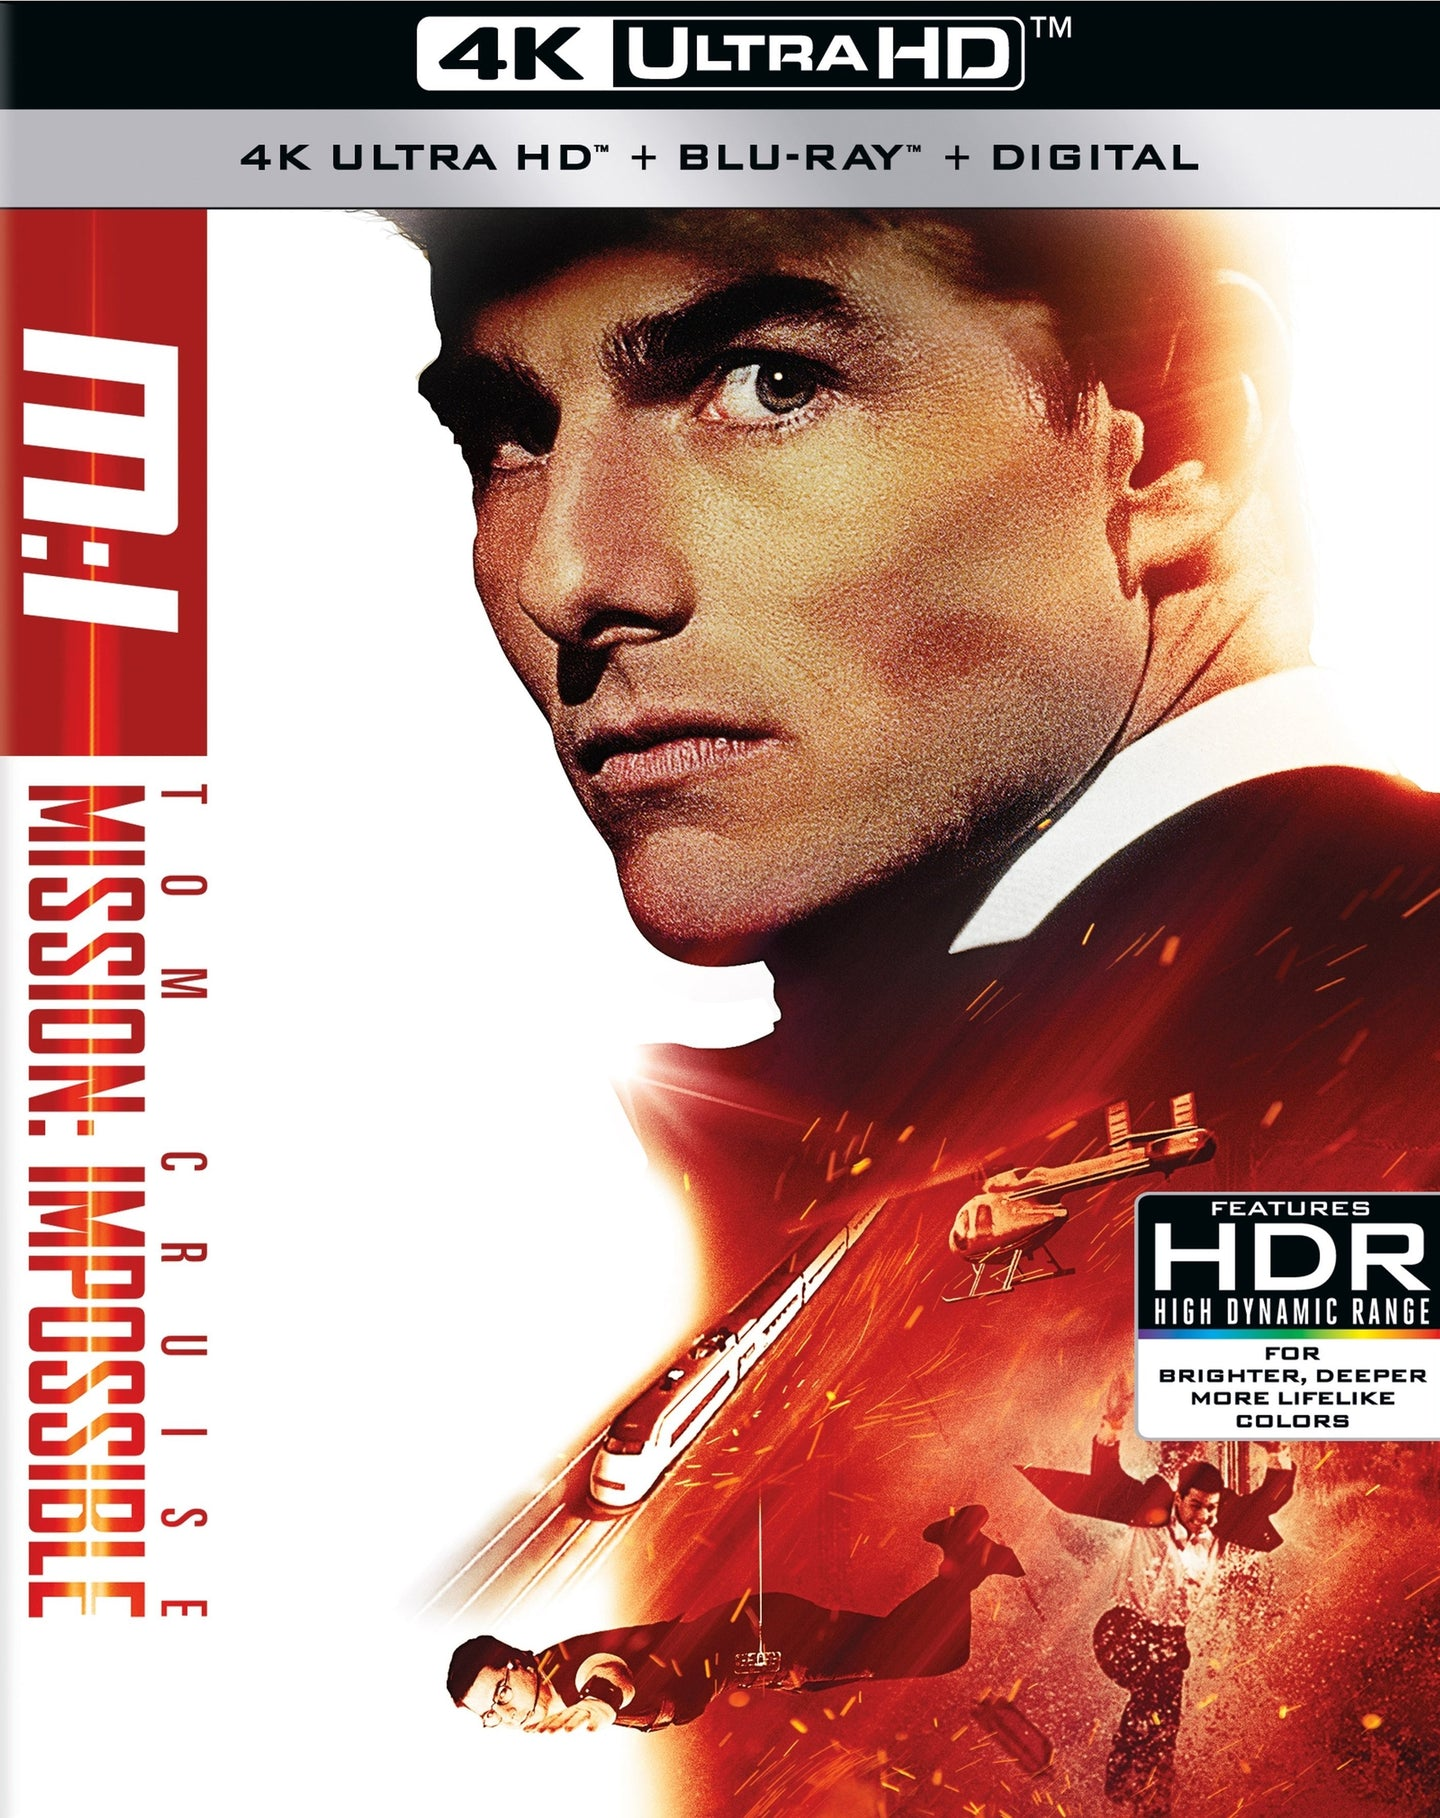 Mission Impossible (1996) iTunes 4K code